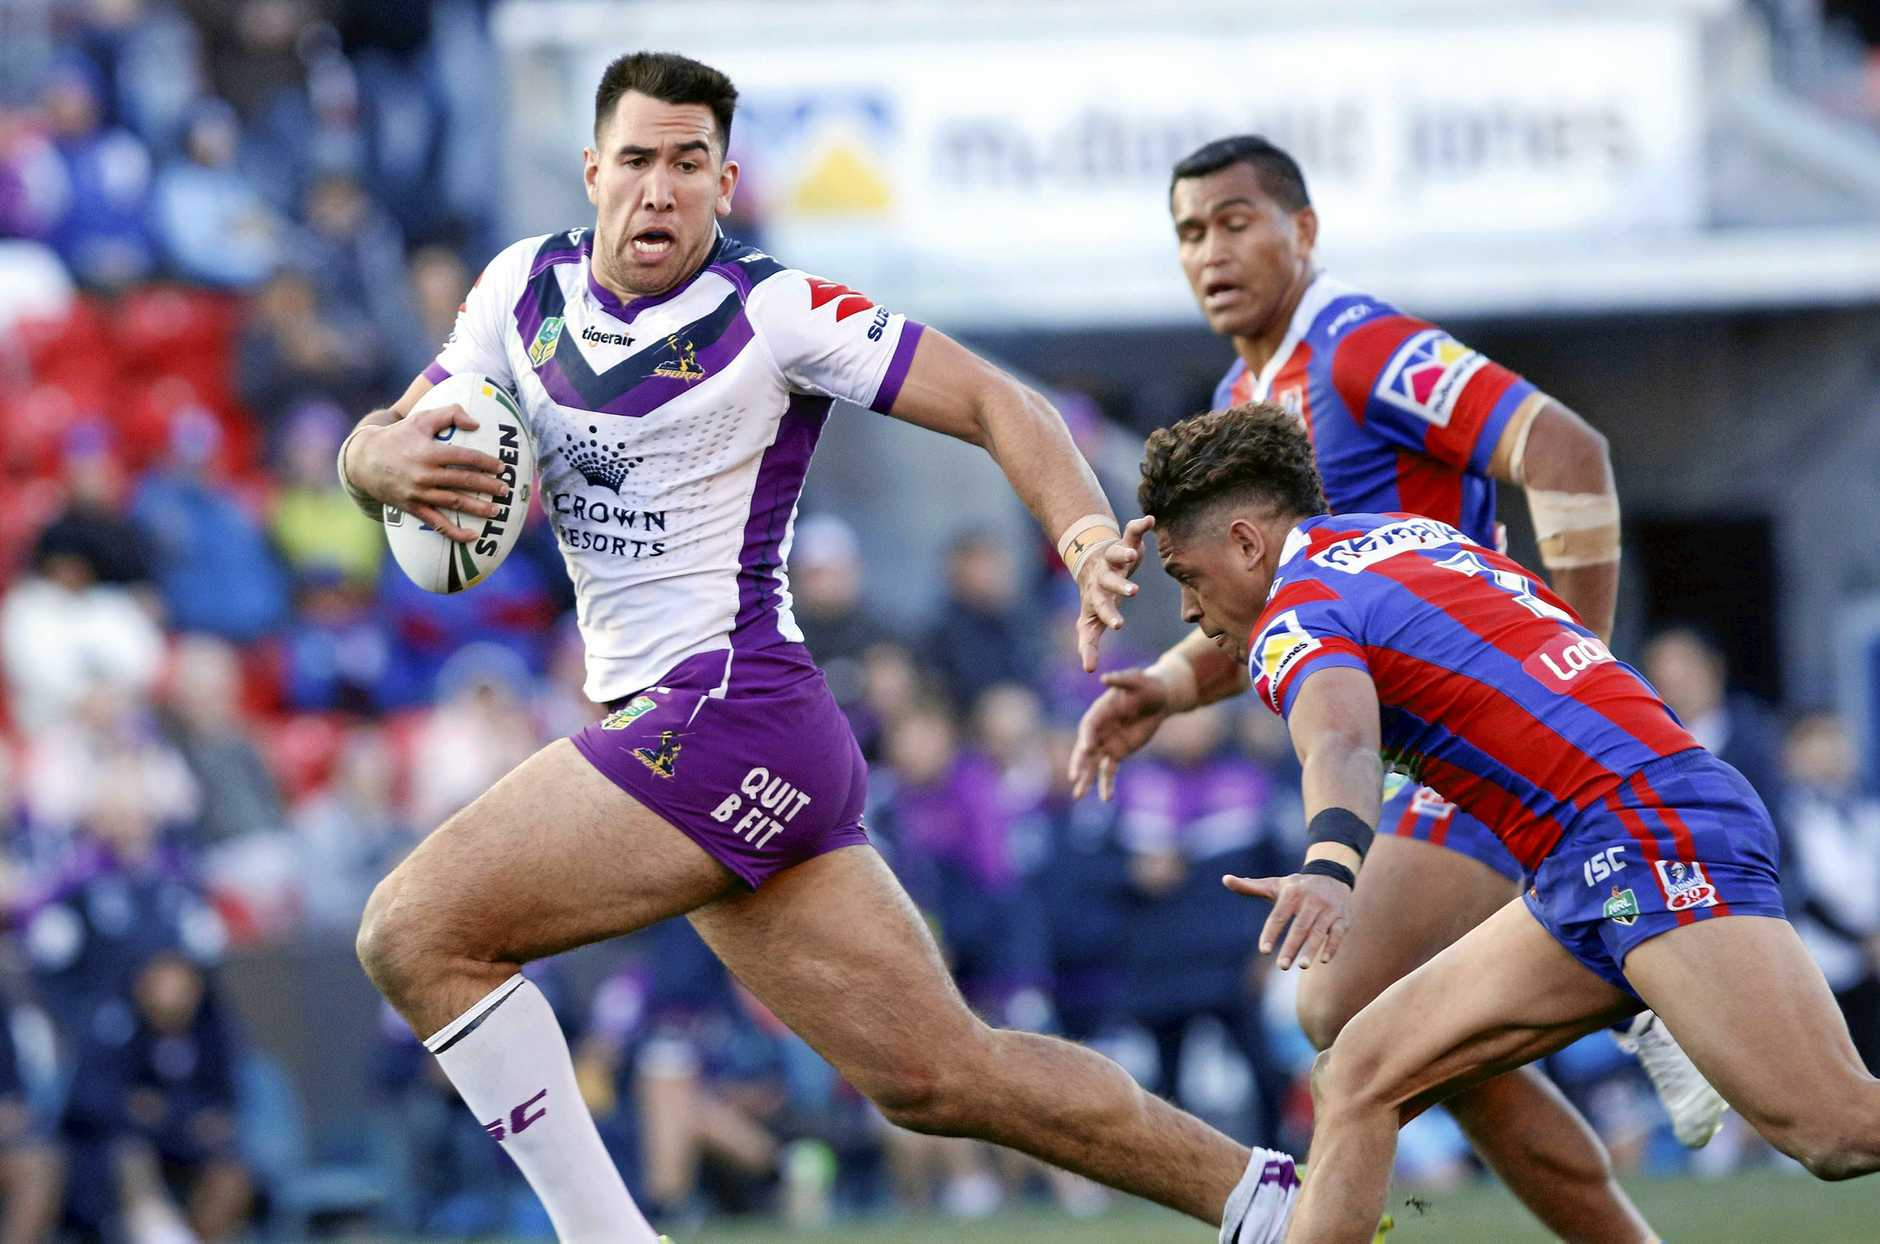 Nelson Asofa-Solomona of the Storm fends off Dane Gagai of the Knights during the Round 24 NRL match between the Newcastle Knights and the Melbourne Storm at McDonald Jones Stadium in Newcastle, Saturday, August 19, 2017. (AAP Image/Darren Pateman) NO ARCHIVING, EDITORIAL USE ONLY